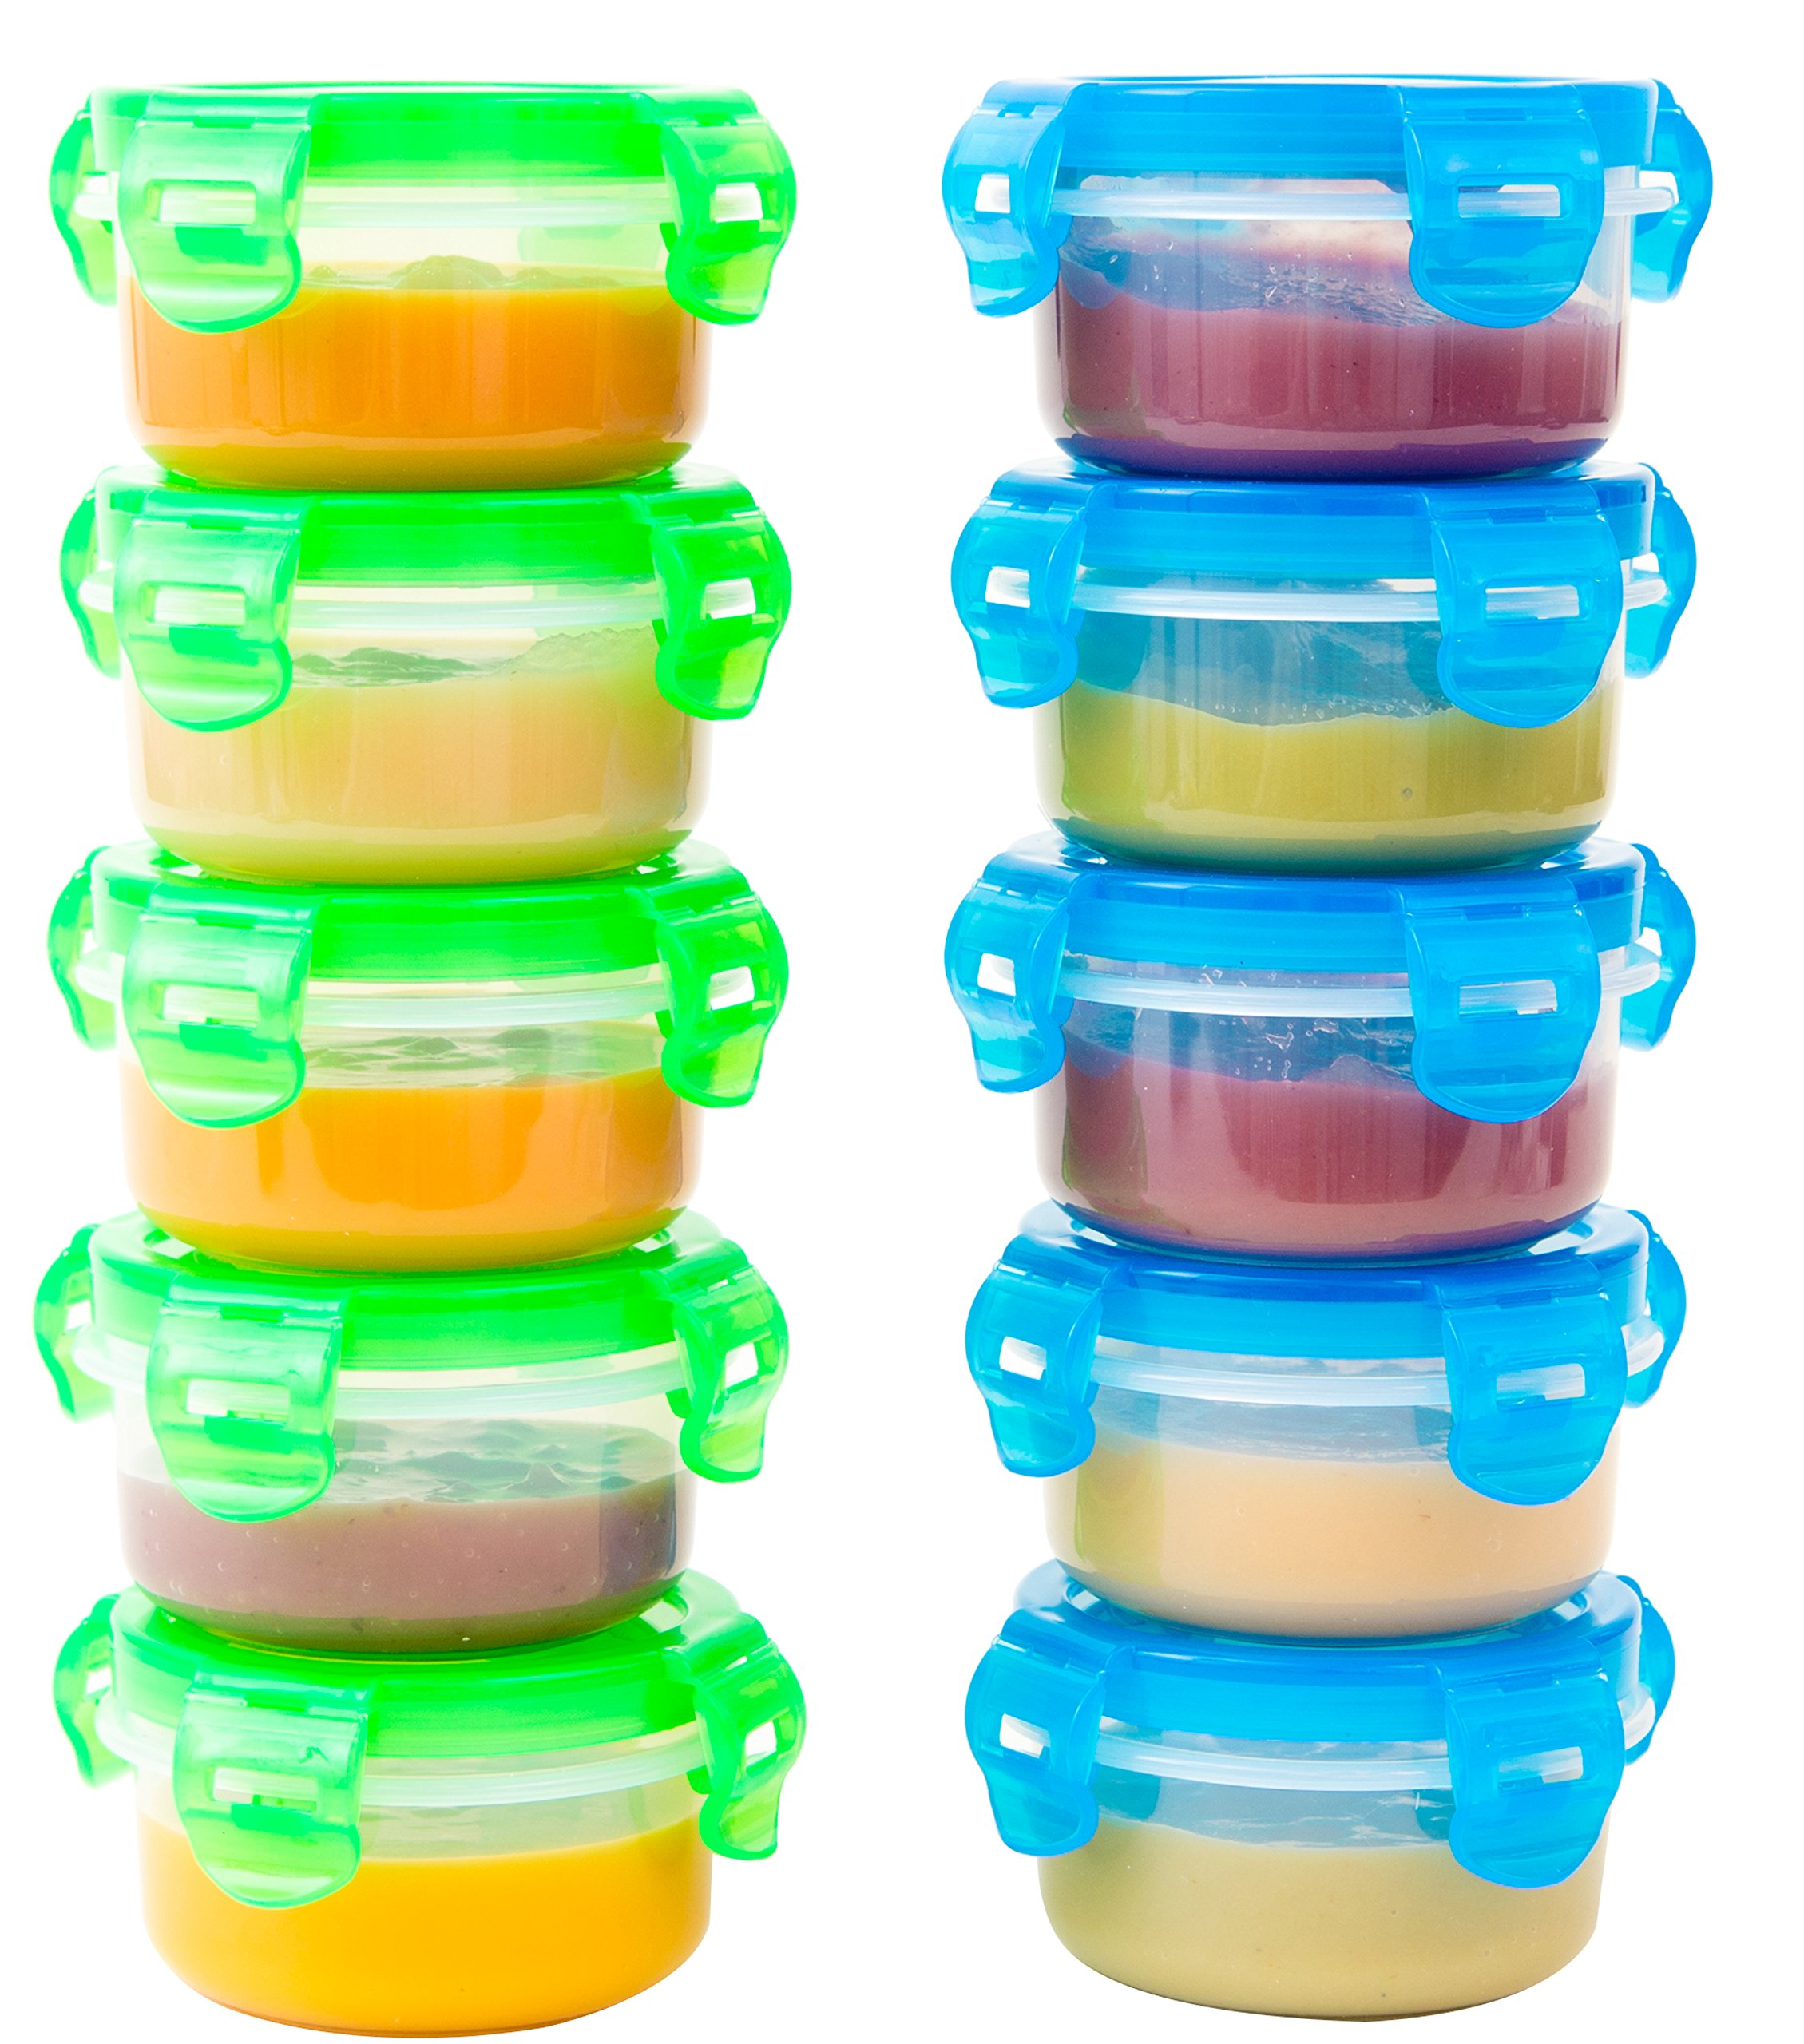 Elacra Baby Food Storage Containers [3.4 oz, 10-Piece] Small Containers with Lids for Kids and Toddlers, Leakproof and Airtight by ELACRA